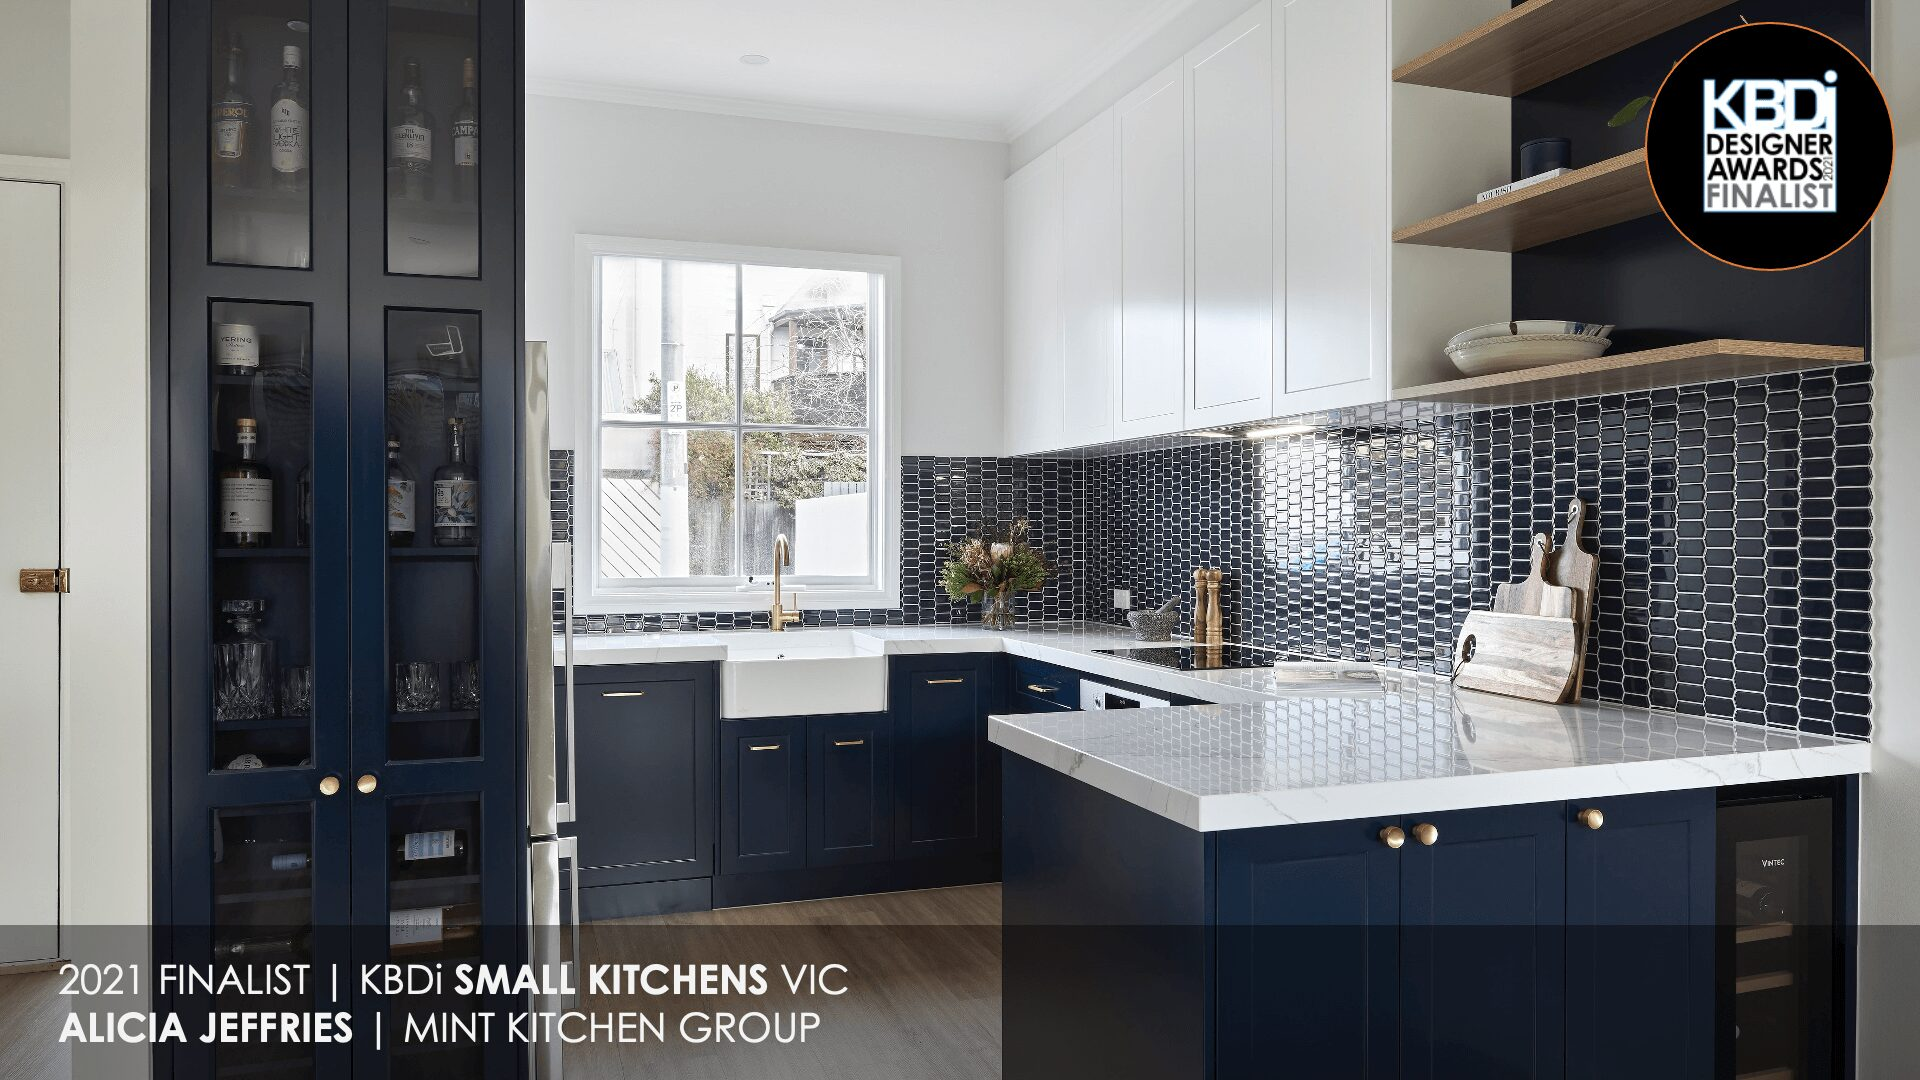 A_20_Alicia Jeffries_Small Kitchens_VIC